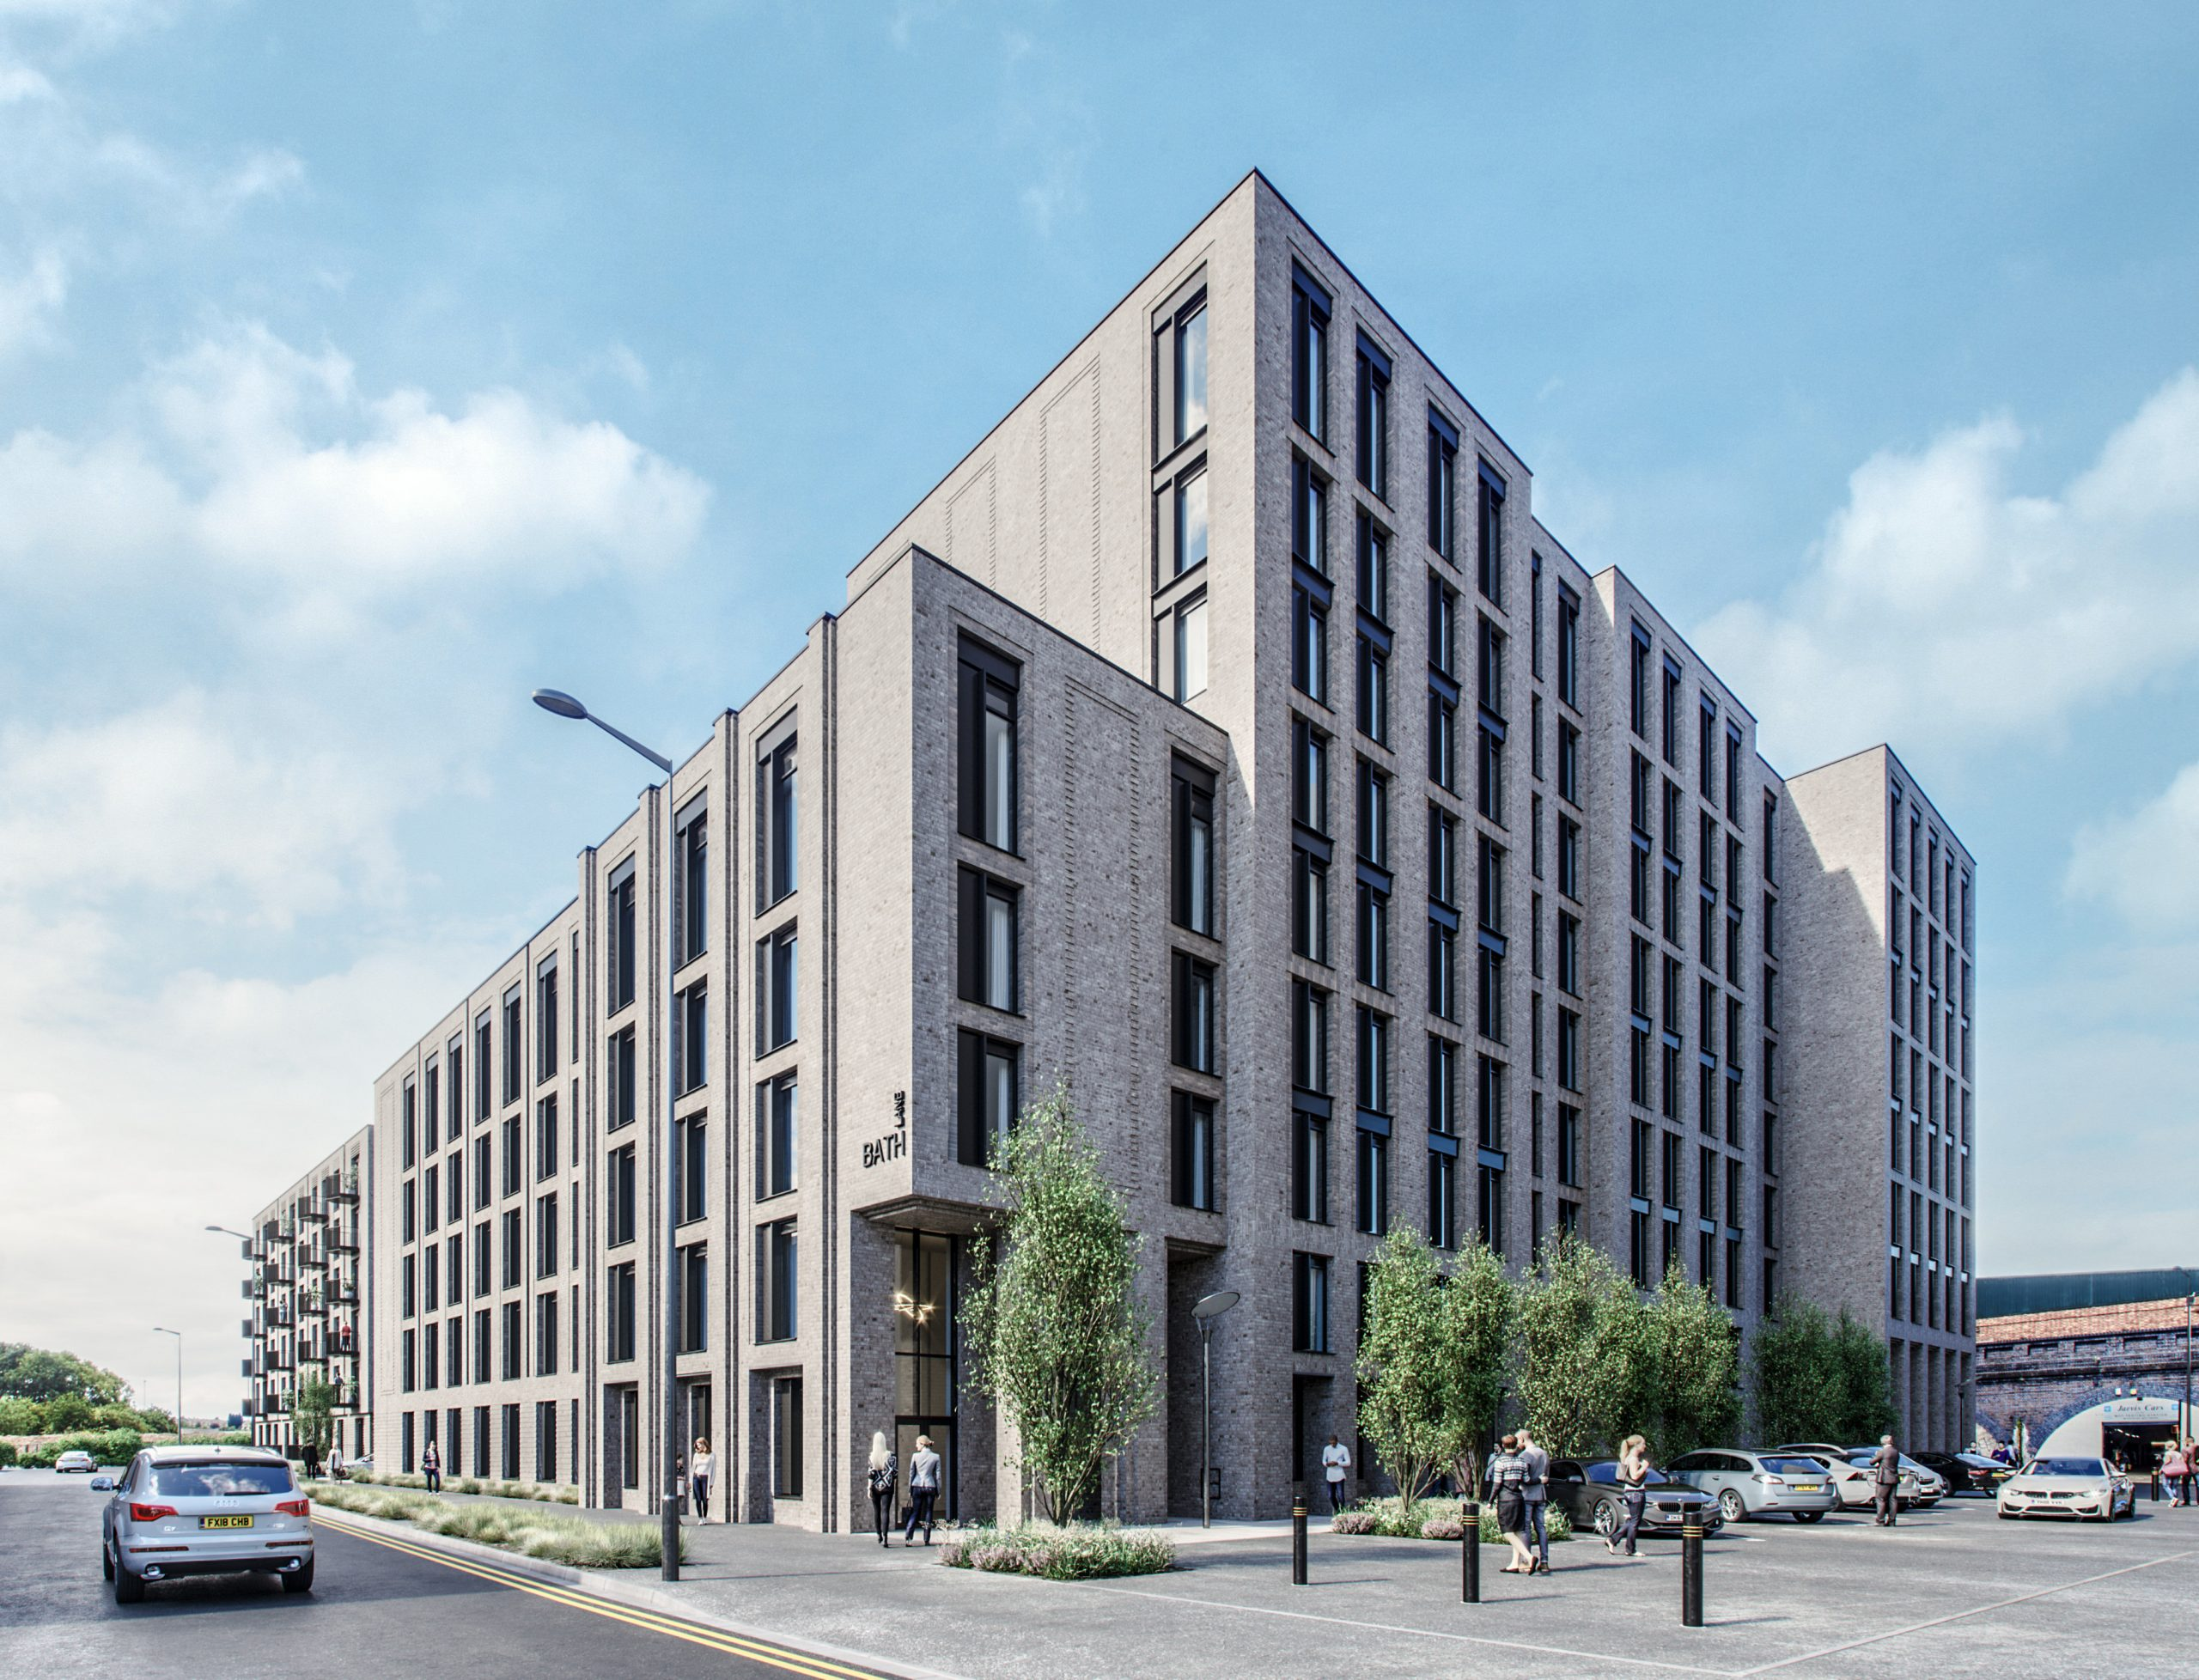 Student Accommodation Investment